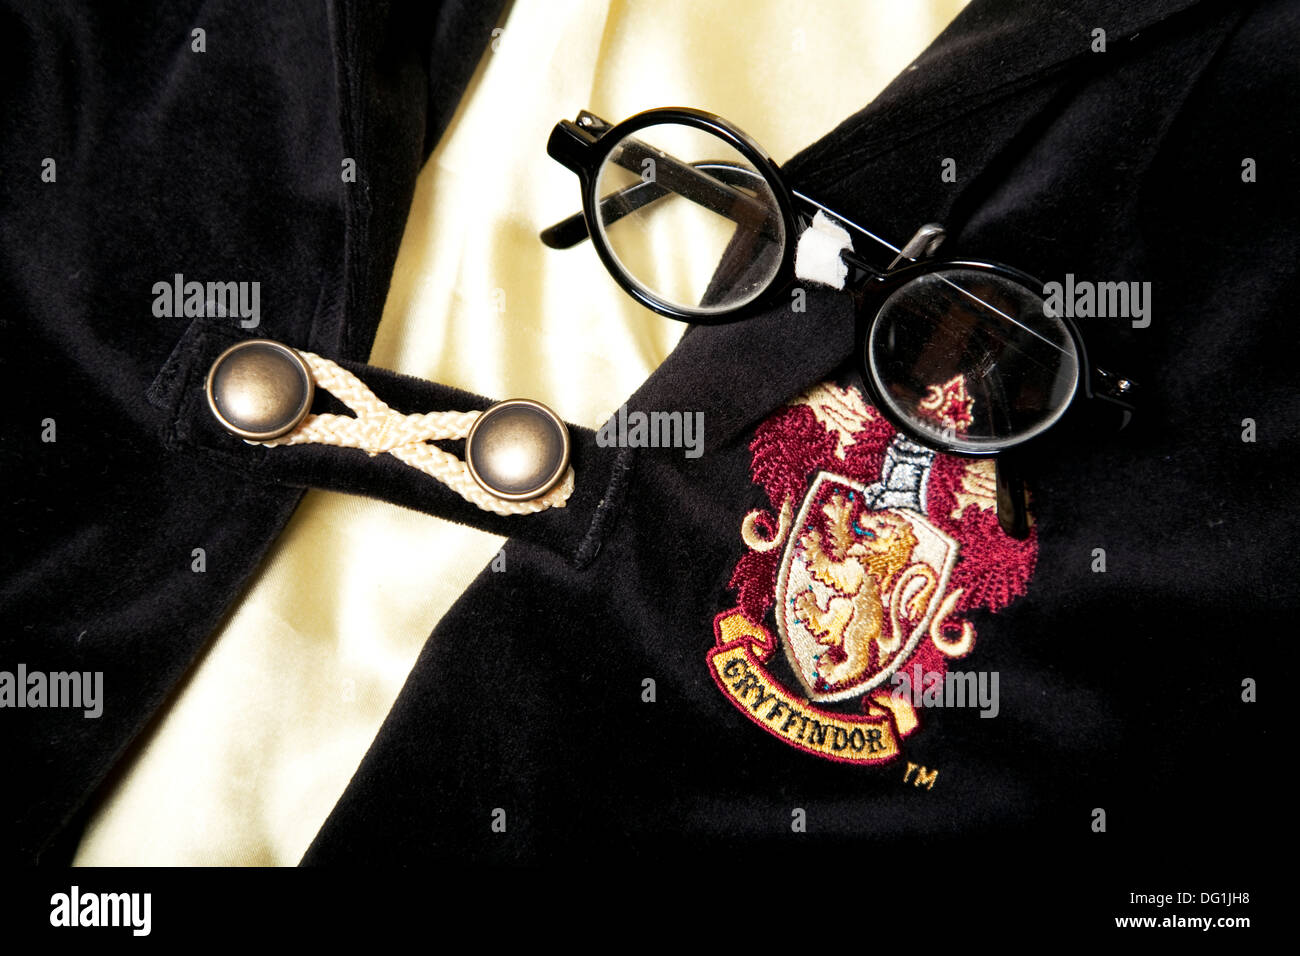 Harry Potter cape and spectacles - Stock Image